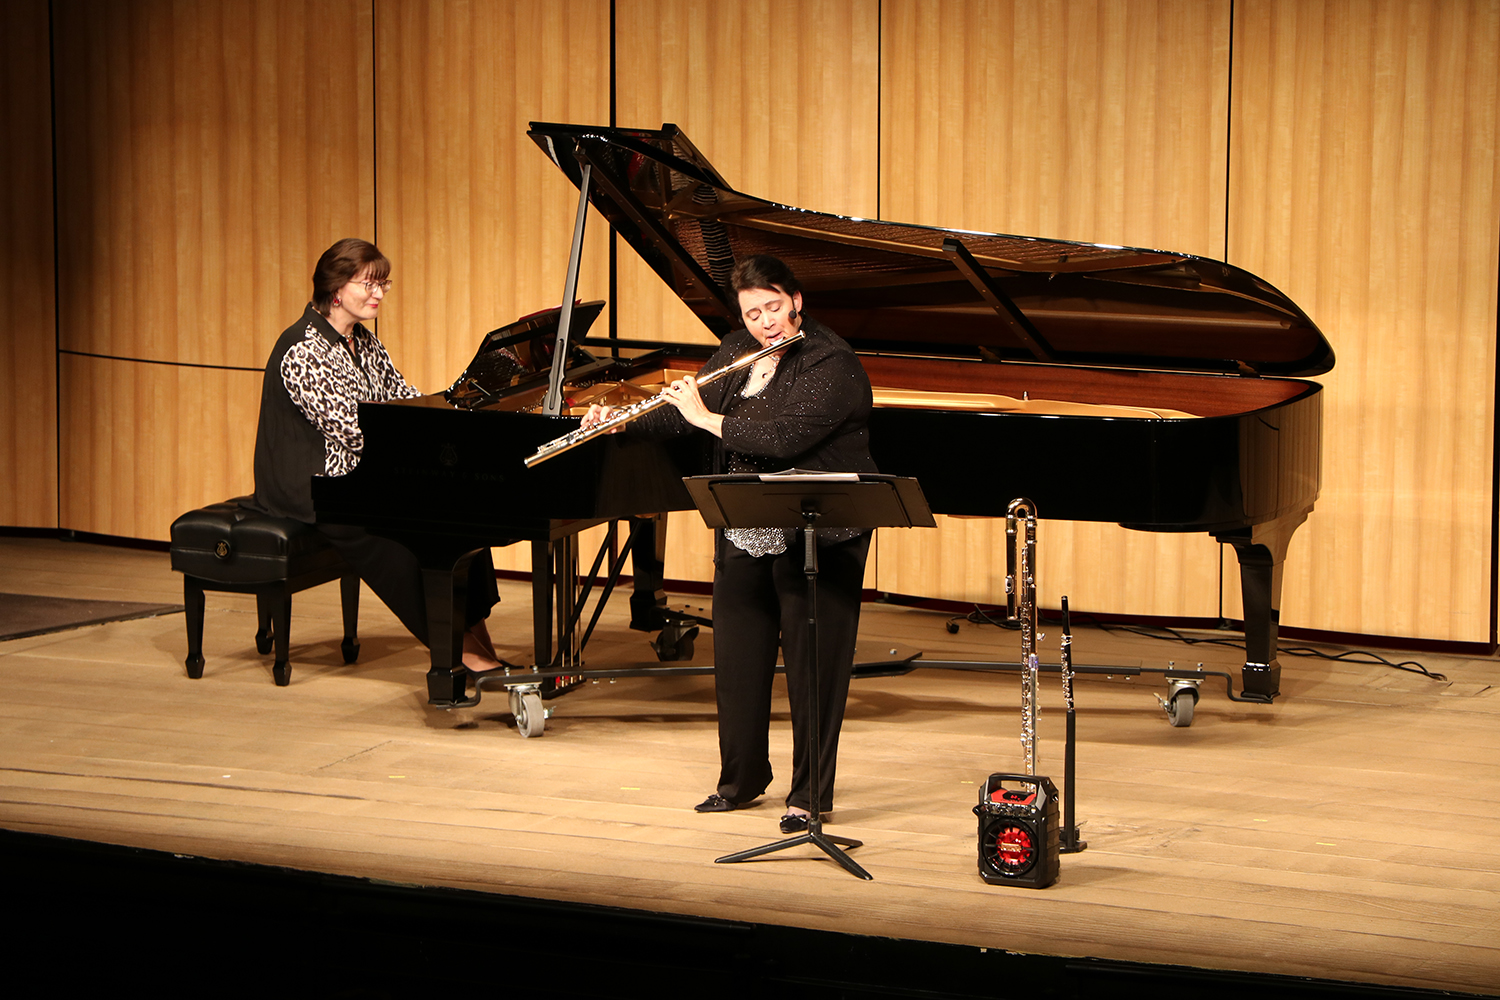 Performing a musical piece on flute was Tracy Harris, accompanied by pianist Svetlana Radikovn-Harris.